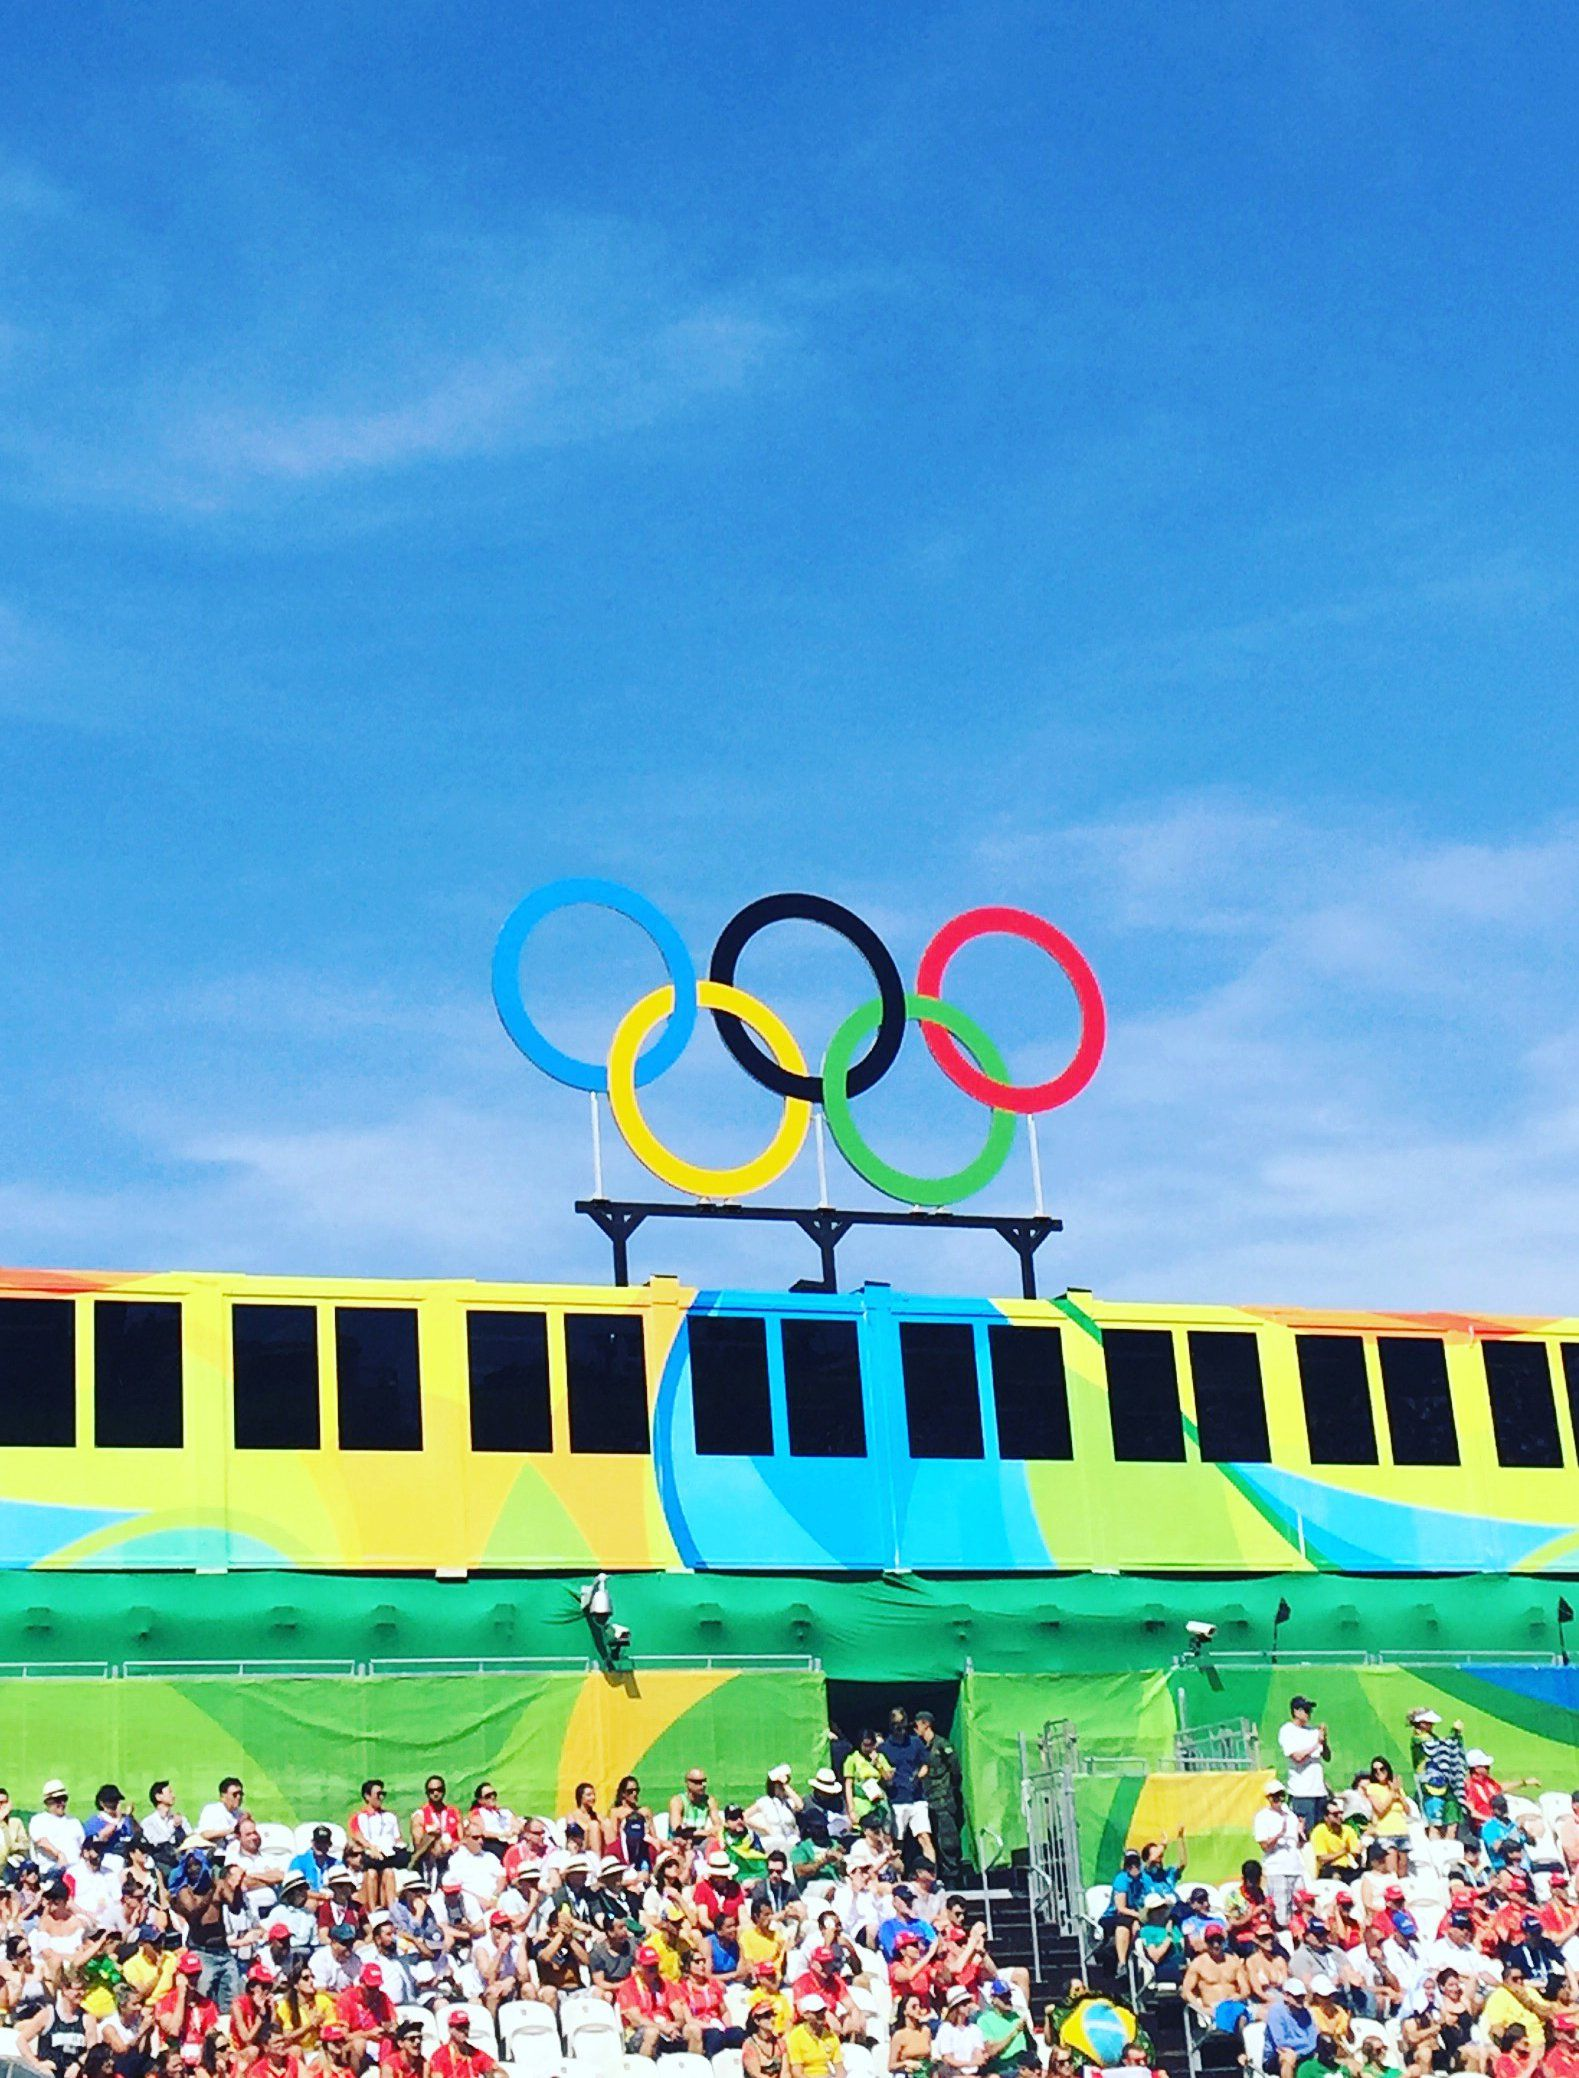 A Firsthand Account of Whether the Rio Games Are Really as Bad as the Media Is Saying